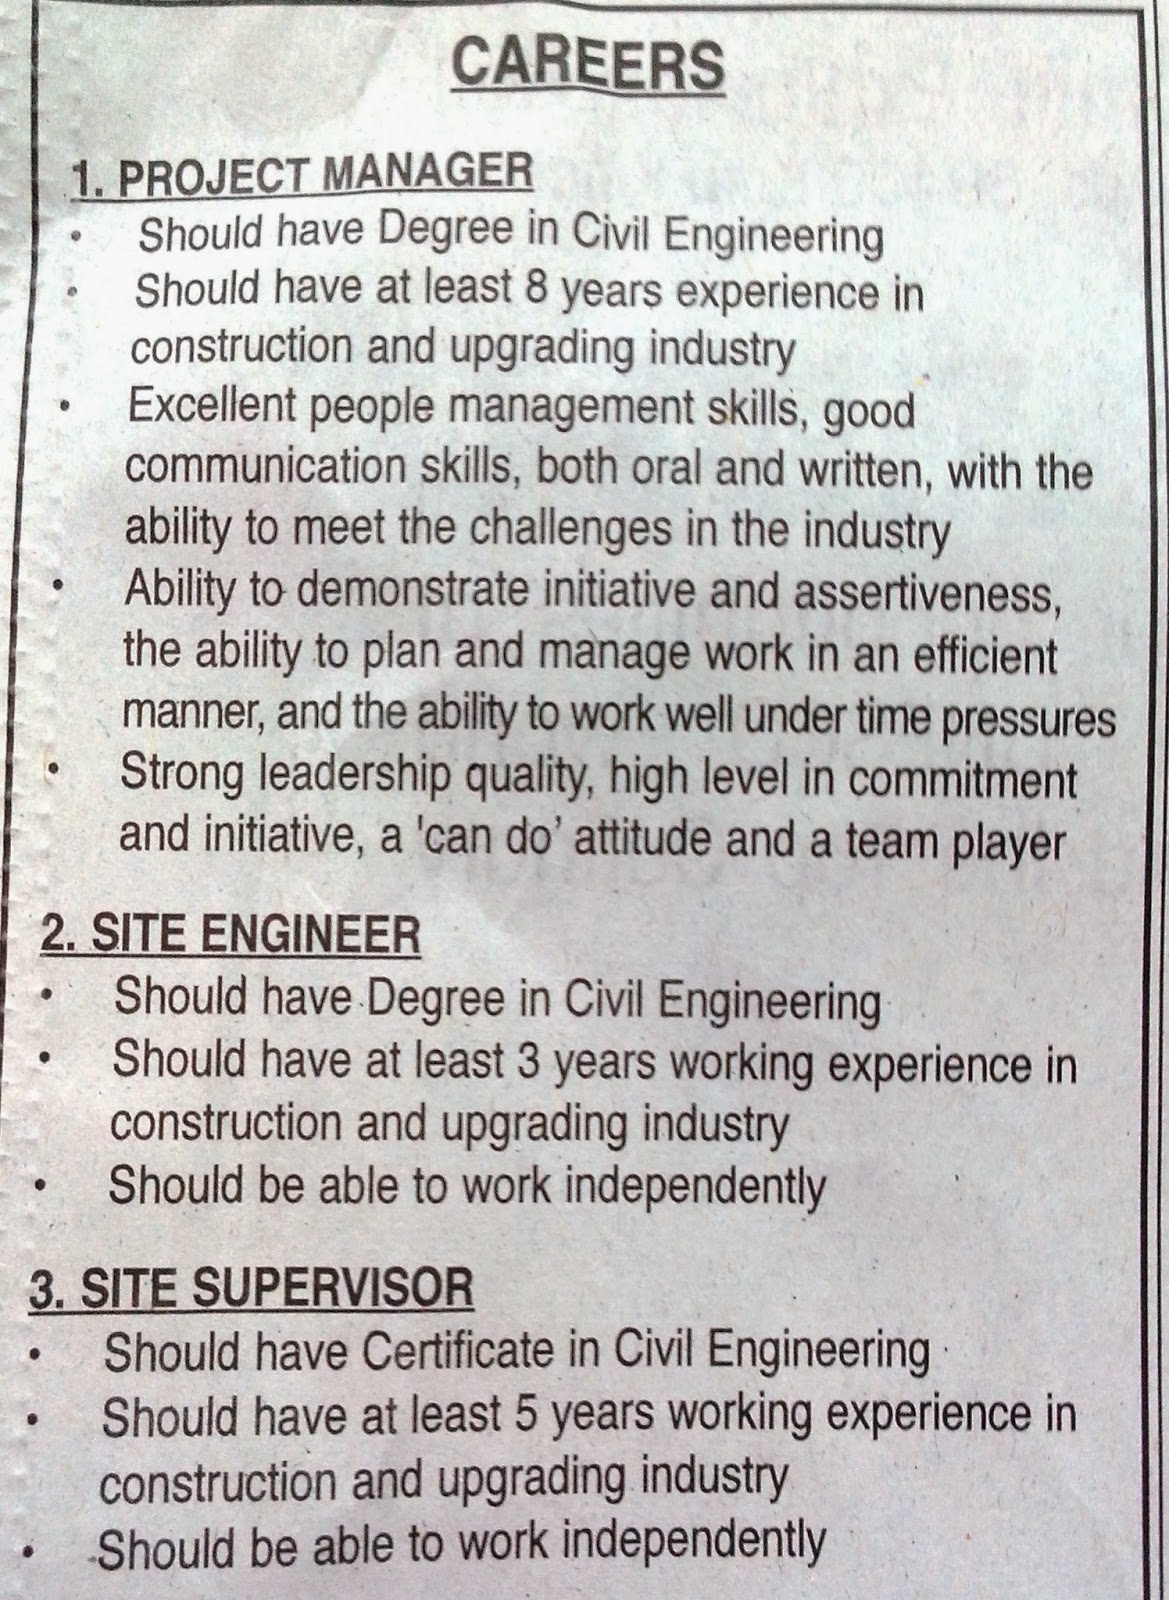 SABAH VACANCY 2014 : JOB VACANCY AT KOTA KINABALU CONSTRUCTION